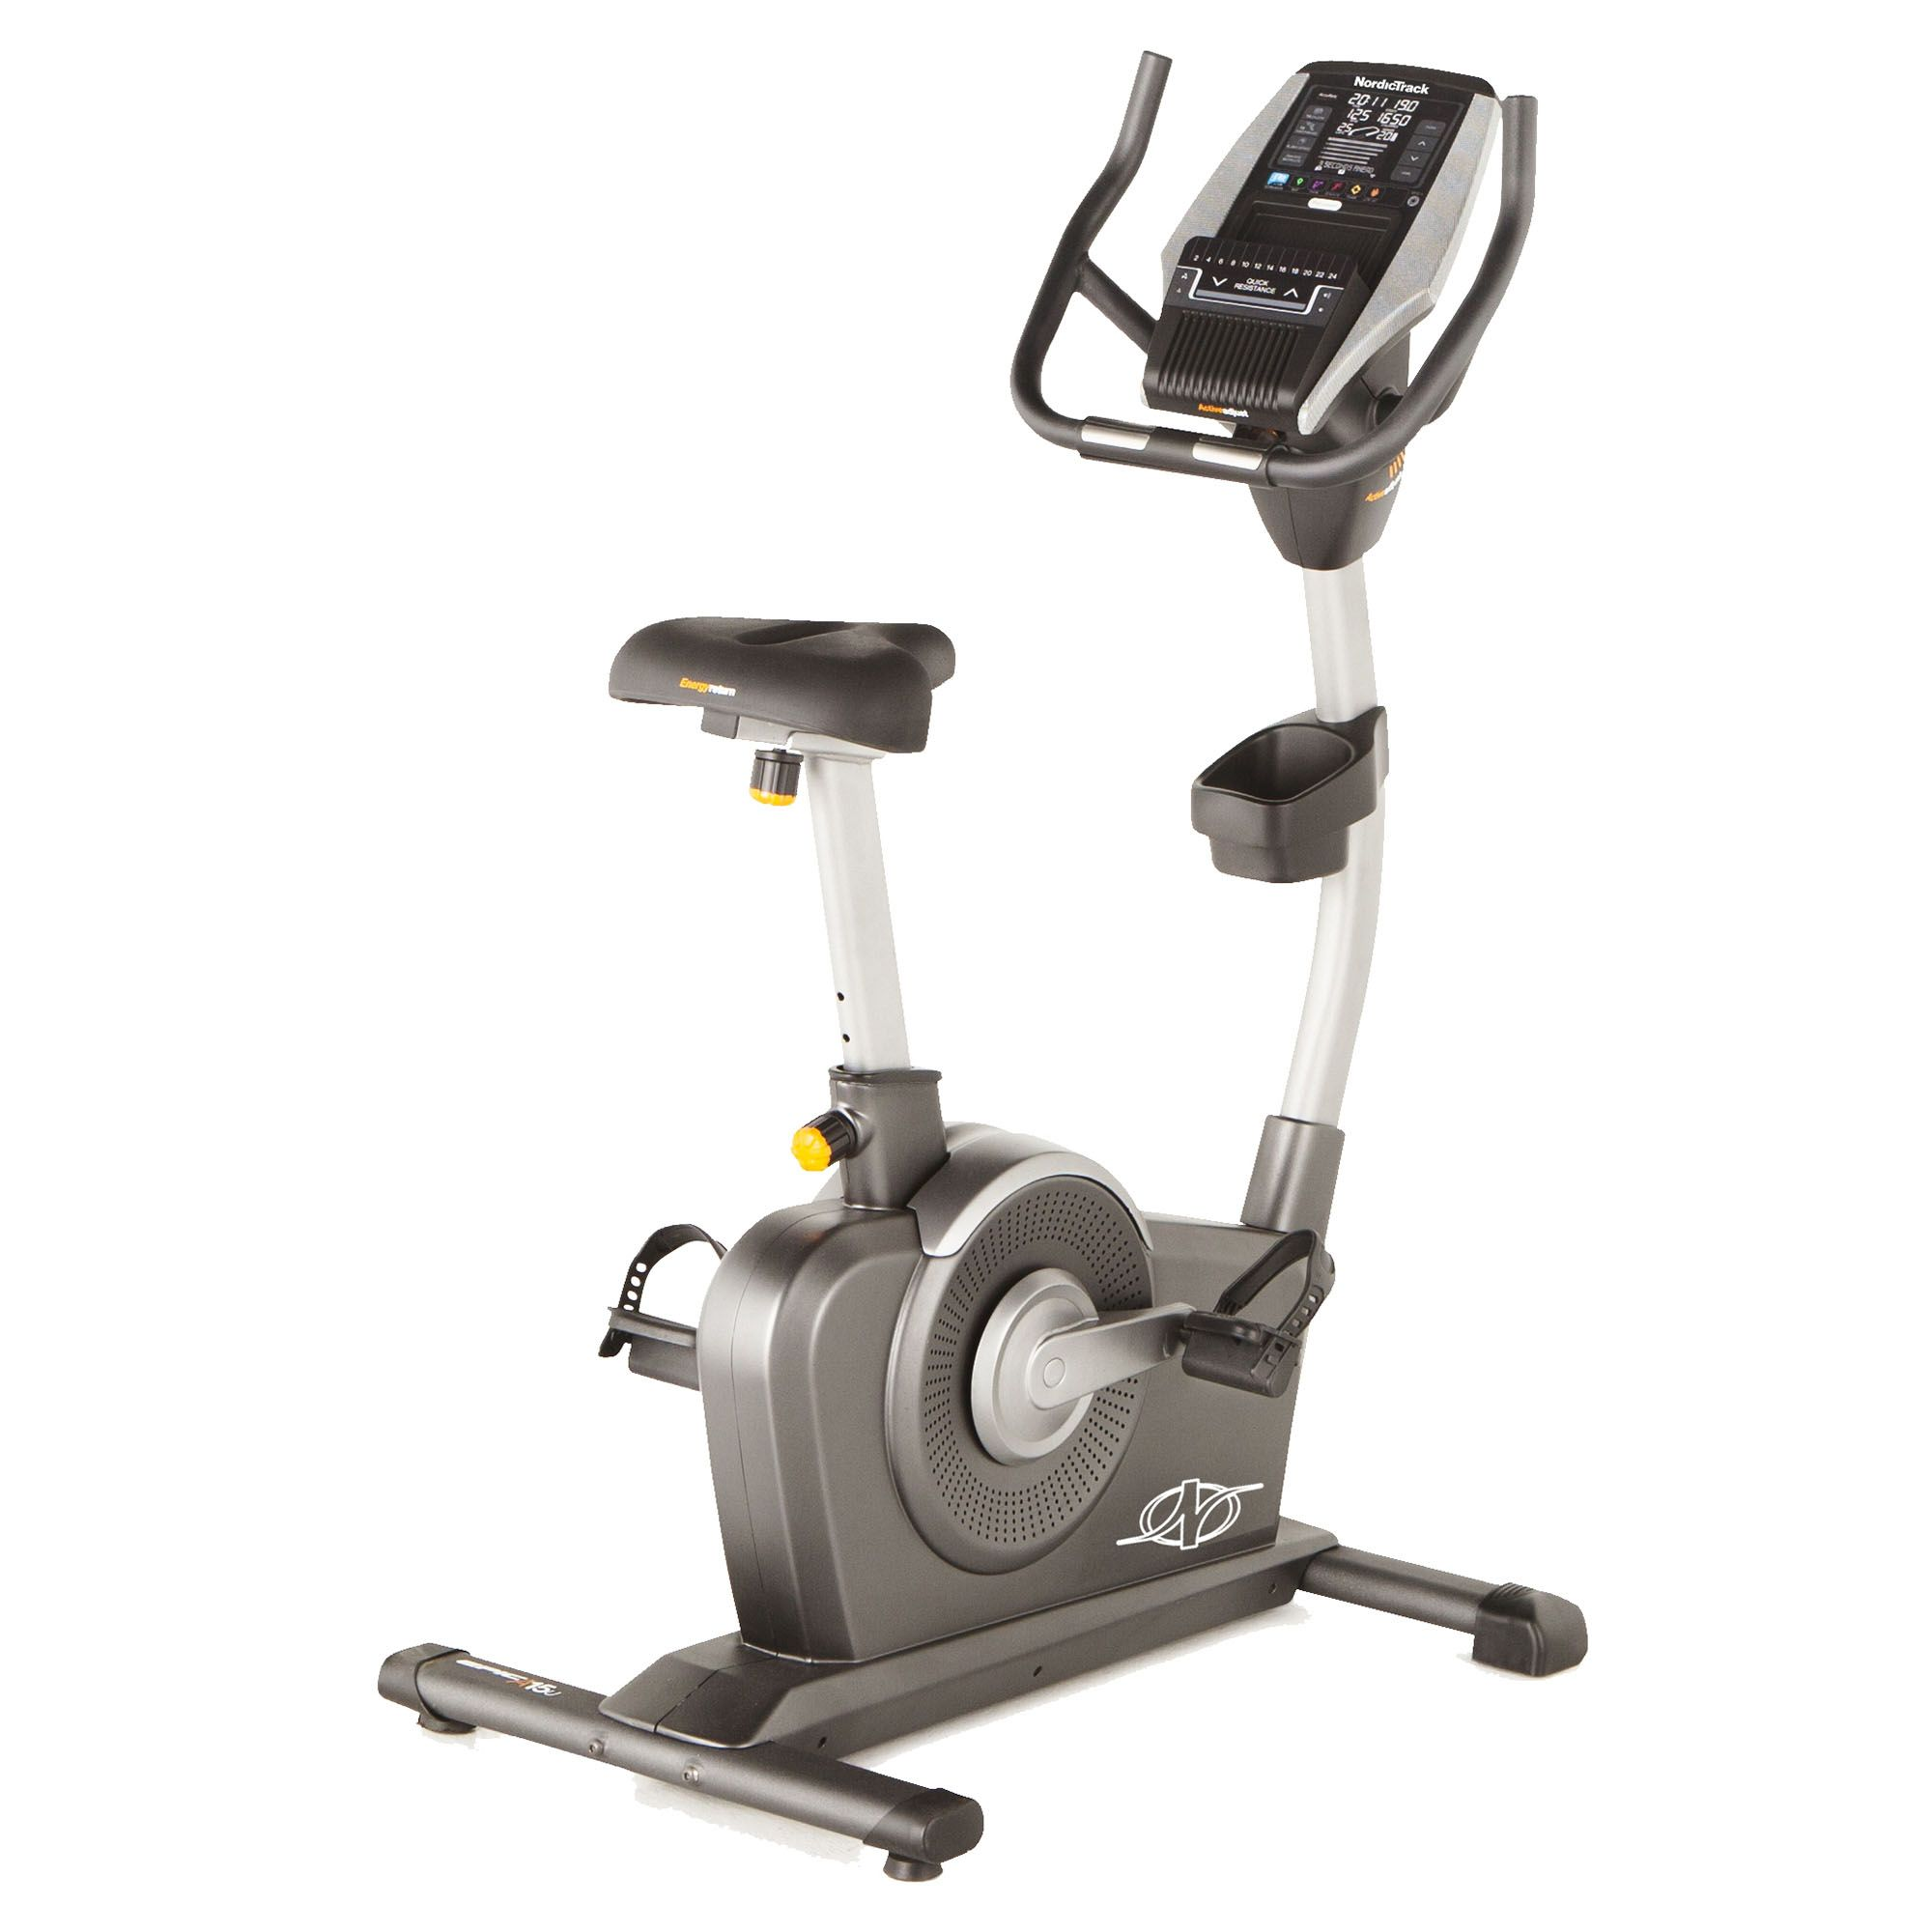 measure on google maps with Nordictrack U100 Exercise Bike on 507358714251777278 besides Prostitution Increase Summer as well GPS further Nordictrack U100 Exercise Bike in addition Details.